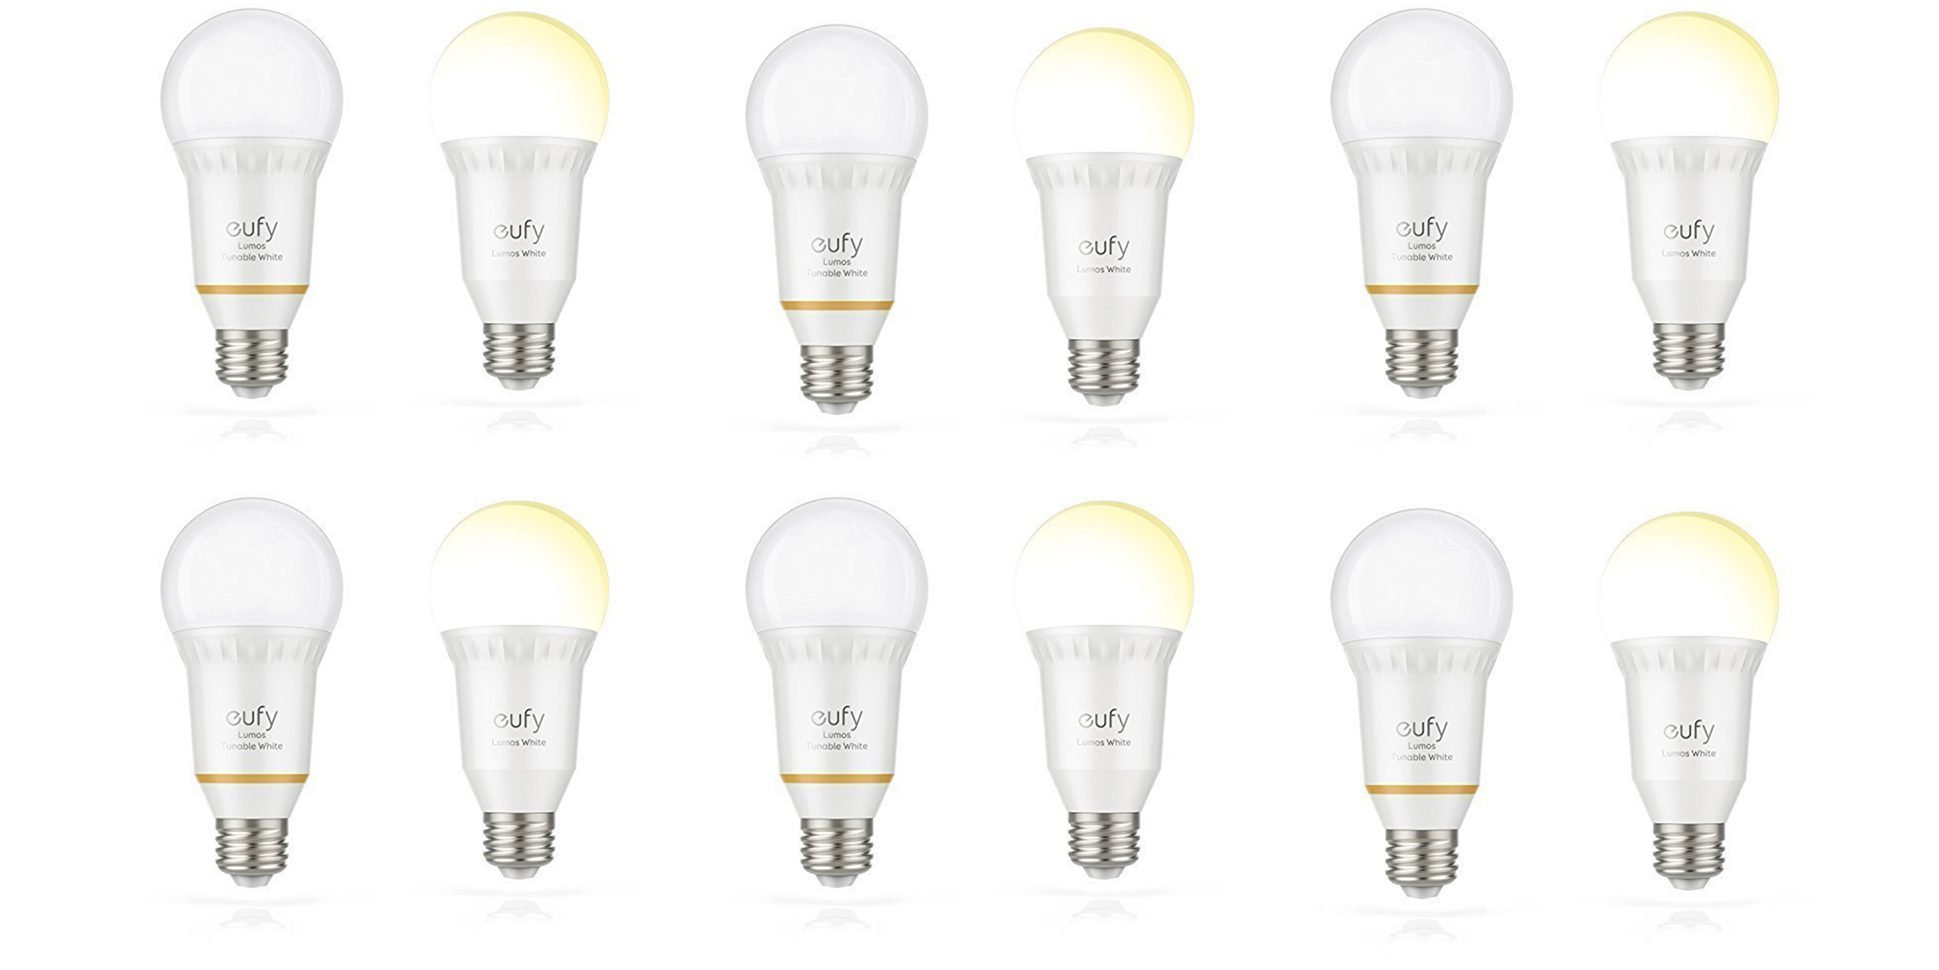 Green Deals: Eufy Lumos Smart LED Light Bulb from $12, more